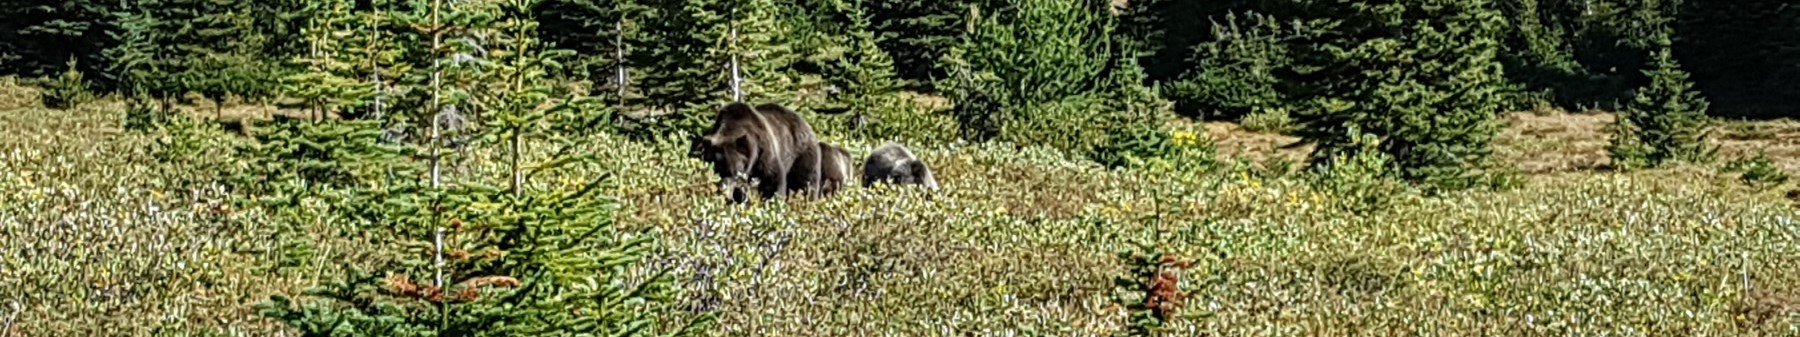 Family of Bears - Credit Jaleen